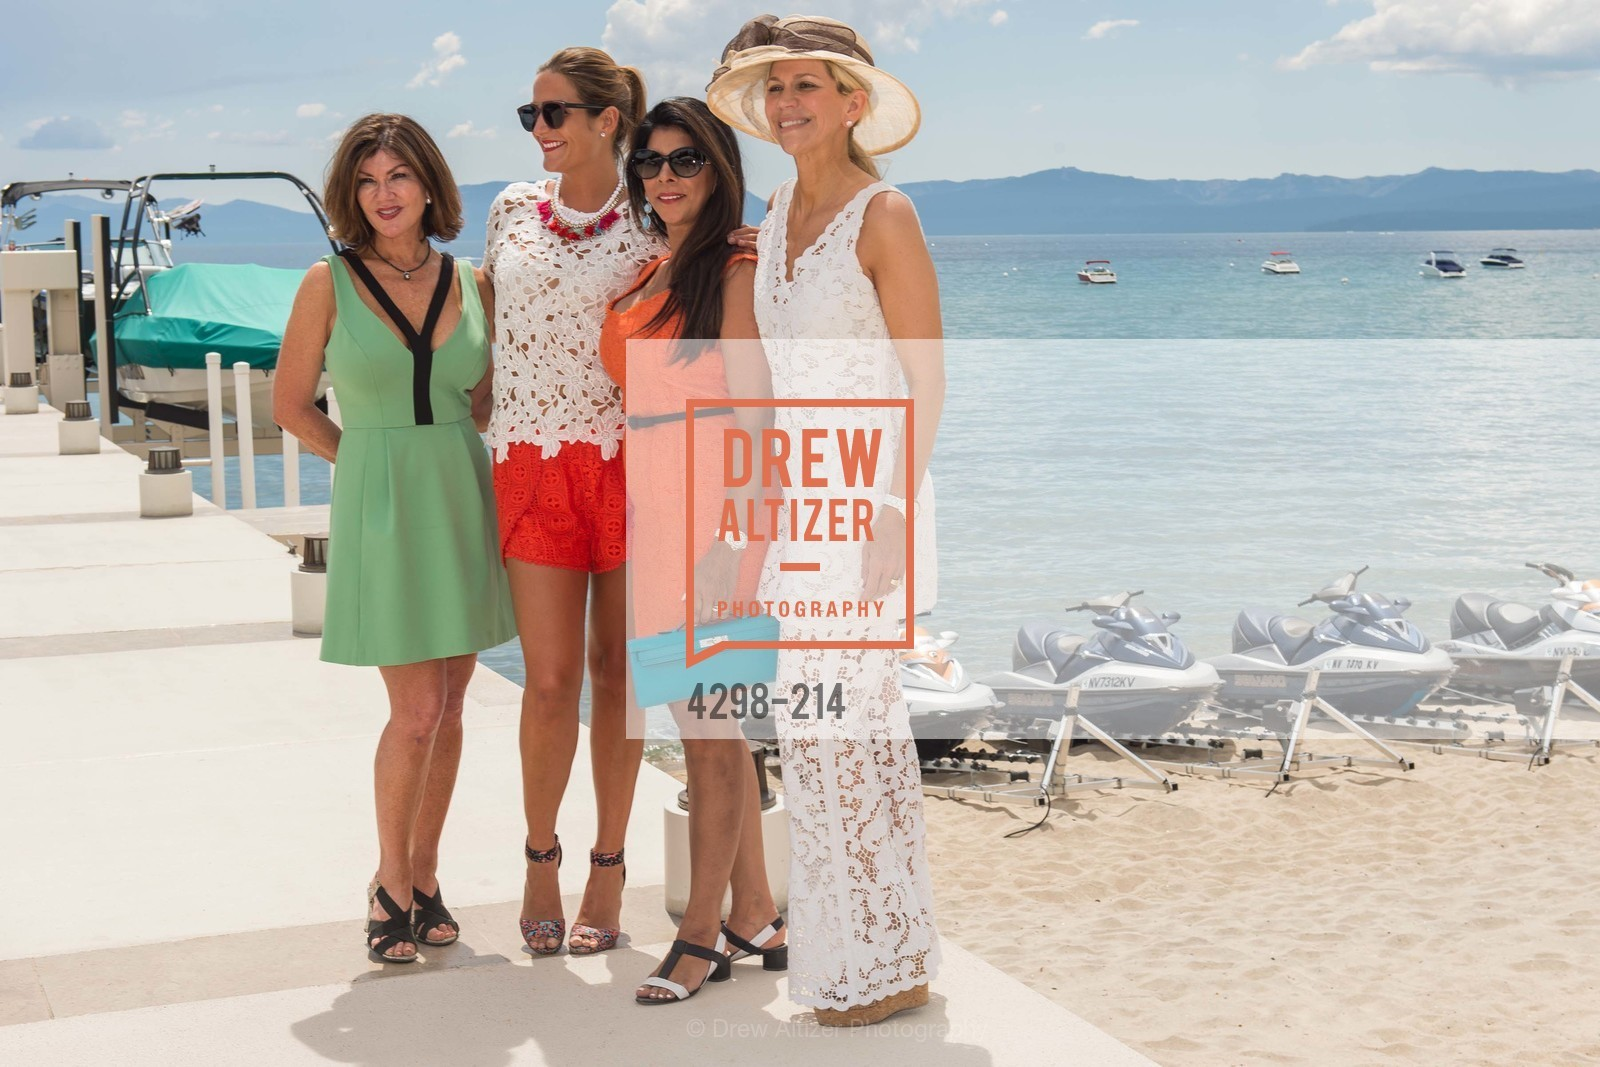 Dianne Yancey, Sujara Pherwani, Kimberly Sharp, Saks Fifth Avenue and The League to Save Lake Tahoe Present Fashion on the Lake, Private Residence, August 1st, 2015,Drew Altizer, Drew Altizer Photography, full-service agency, private events, San Francisco photographer, photographer california